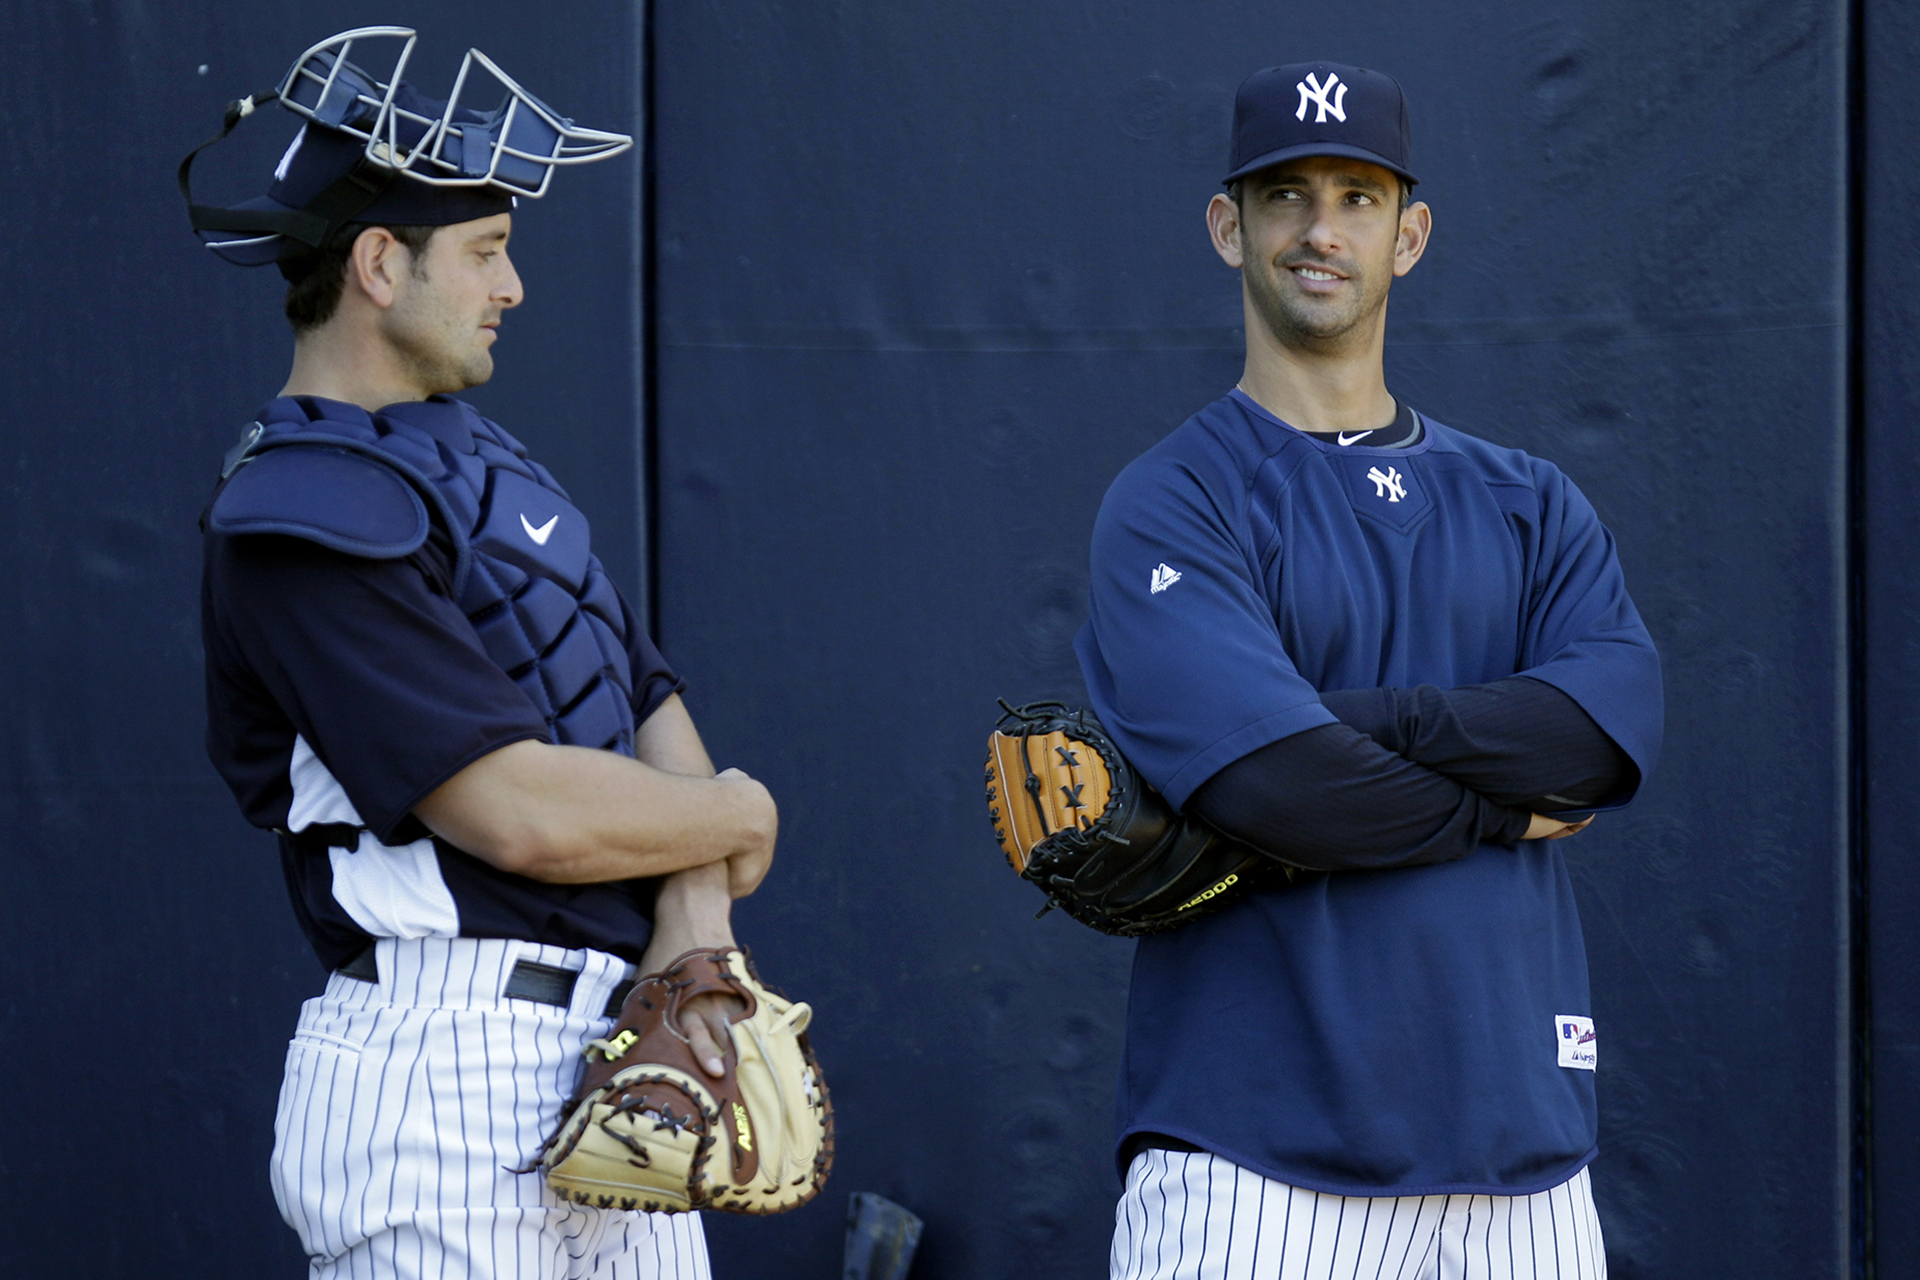 New York Yankees catchers Jorge Posada, right, and Francisco Cervelli, left, chat the first day of pitchers and catchers at spring training baseball Tuesday, Feb. 15, 2011, at Steinbrenner Field in Tampa, Fla. (AP Photo/Charlie Neibergall)